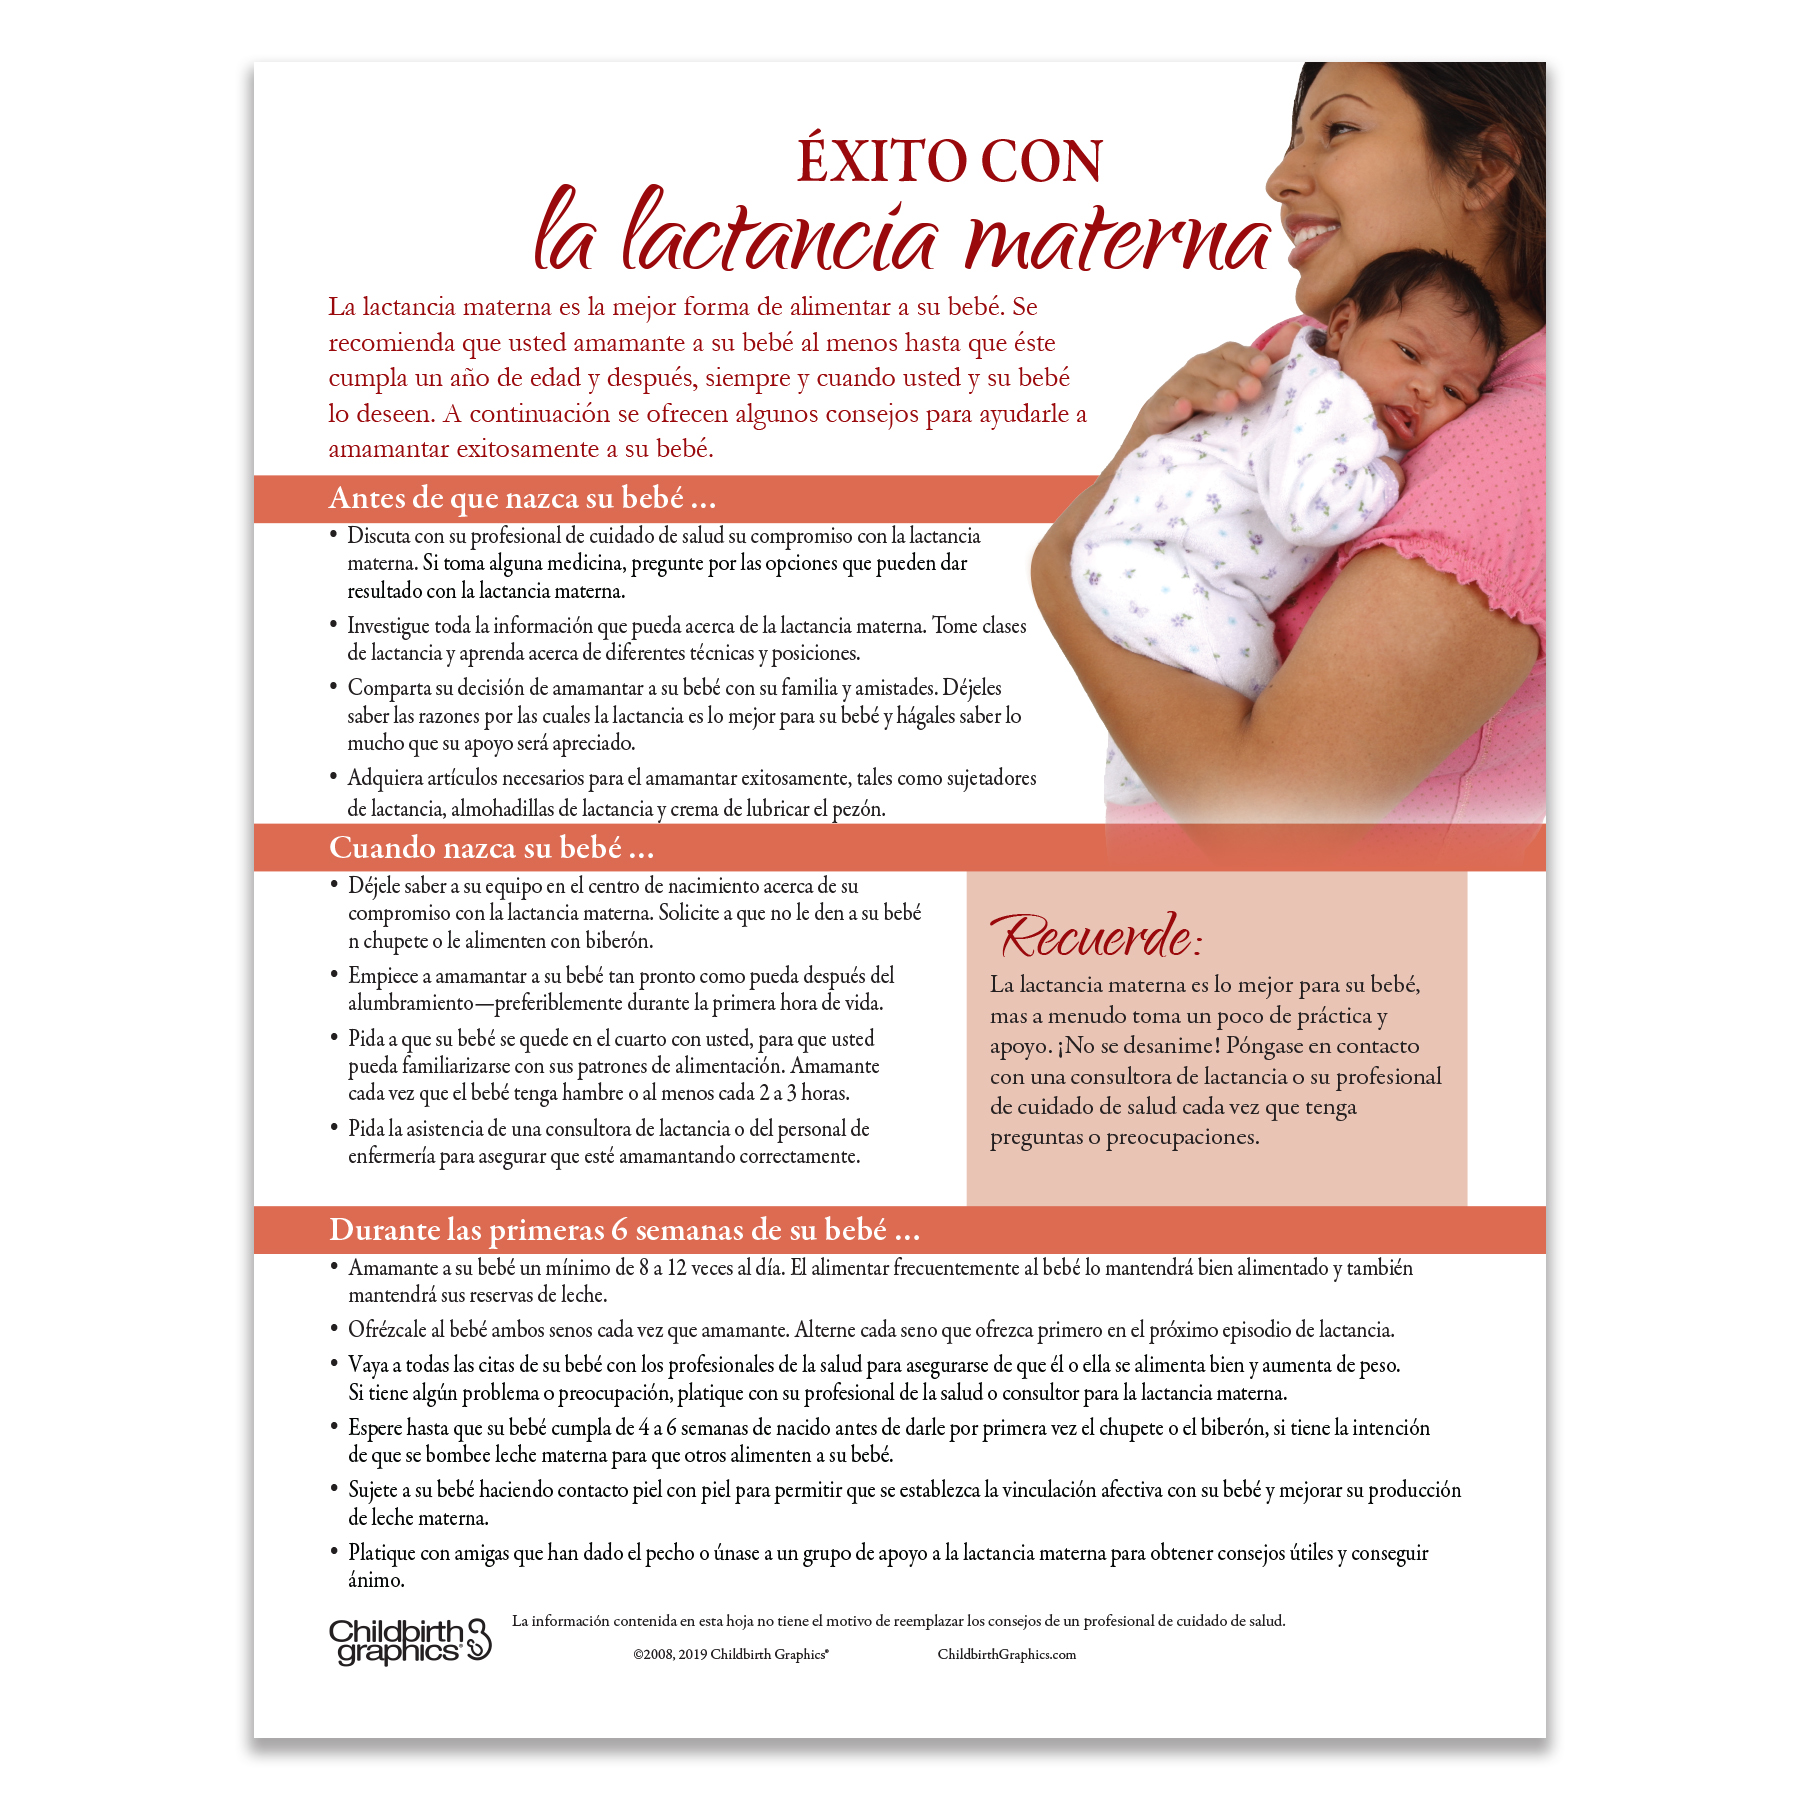 Success with Breastfeeding Tear Pad Spanish side, before birth, when born to 6 weeks, Childbirth Graphics, 52259